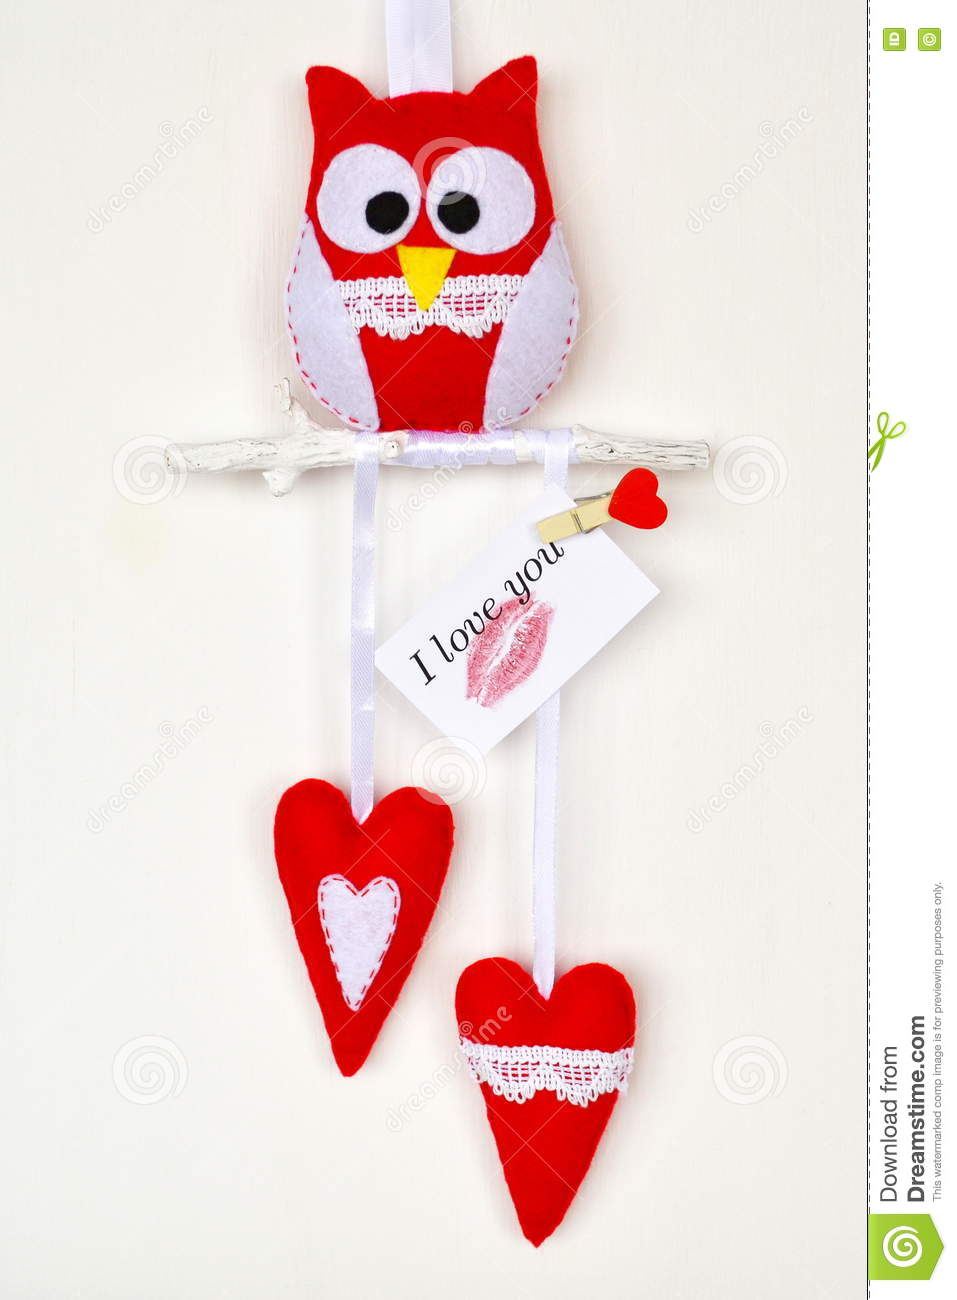 Owl Toy Two Hearts Felt Crafts Card With The Words I Love You – Valentine Card Words